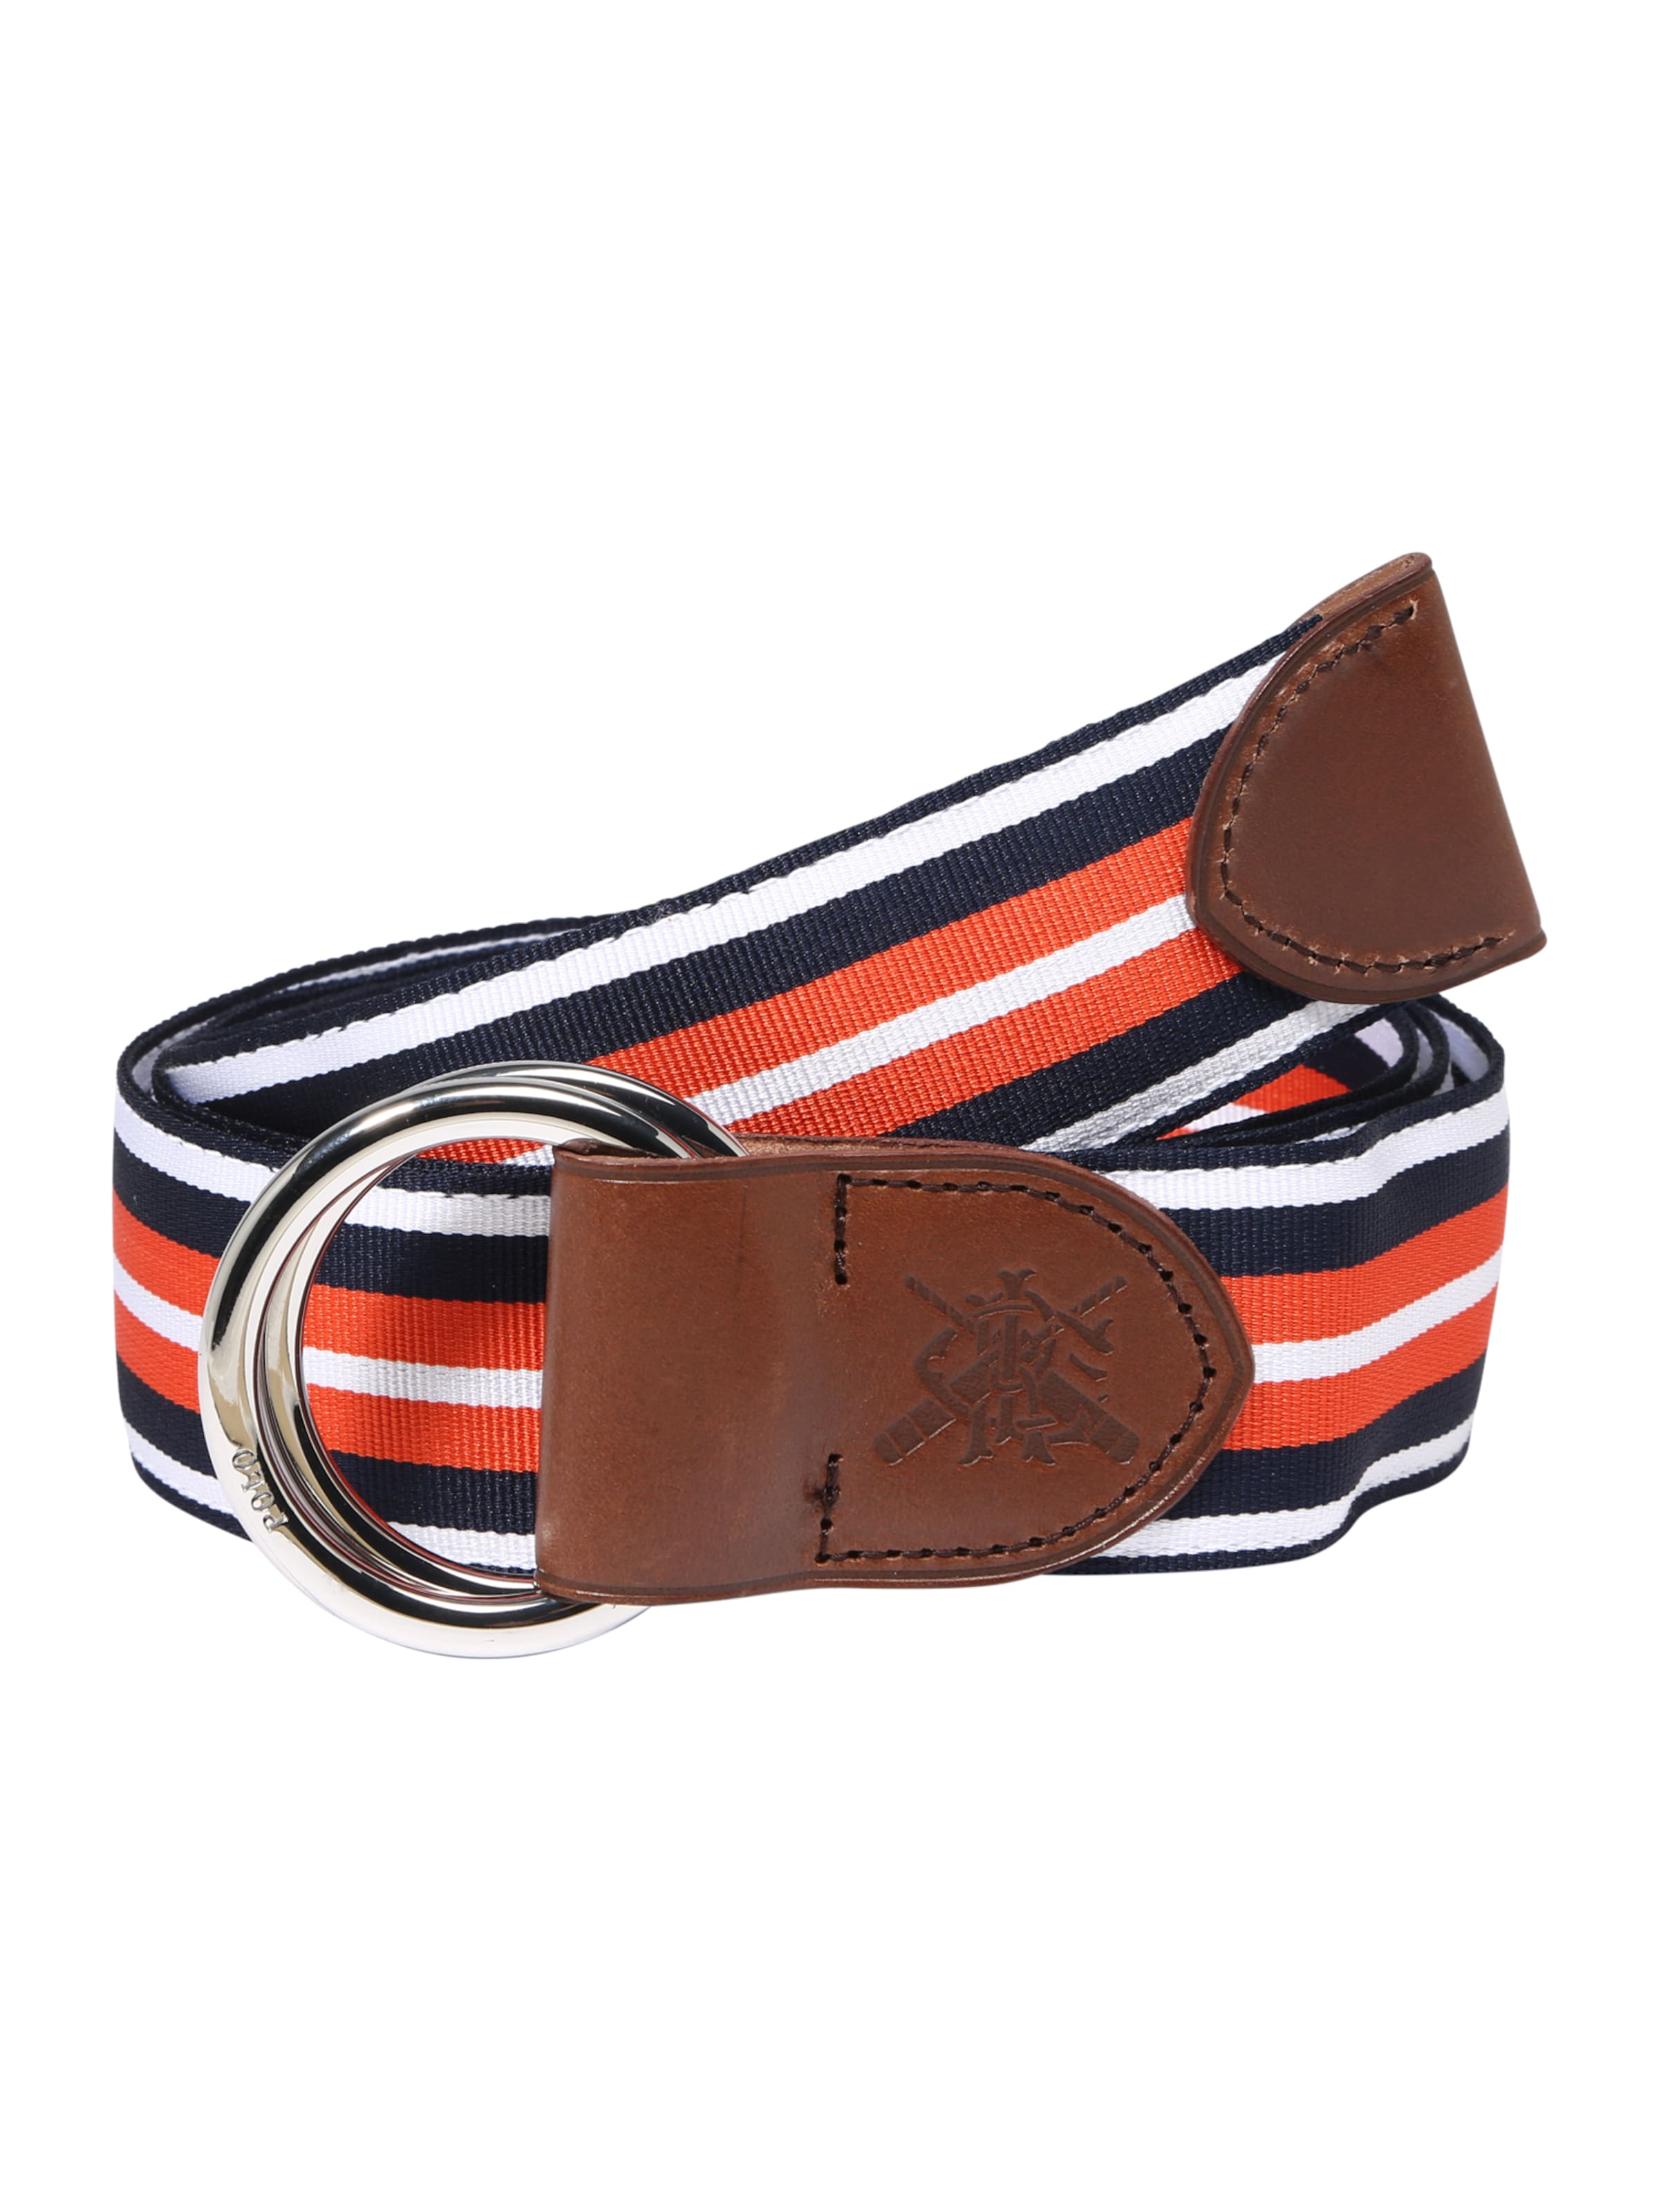 csl Polo Ring Ralph Lauren Gürtel Navy med' o 'grosgrain In 3jR5AL4